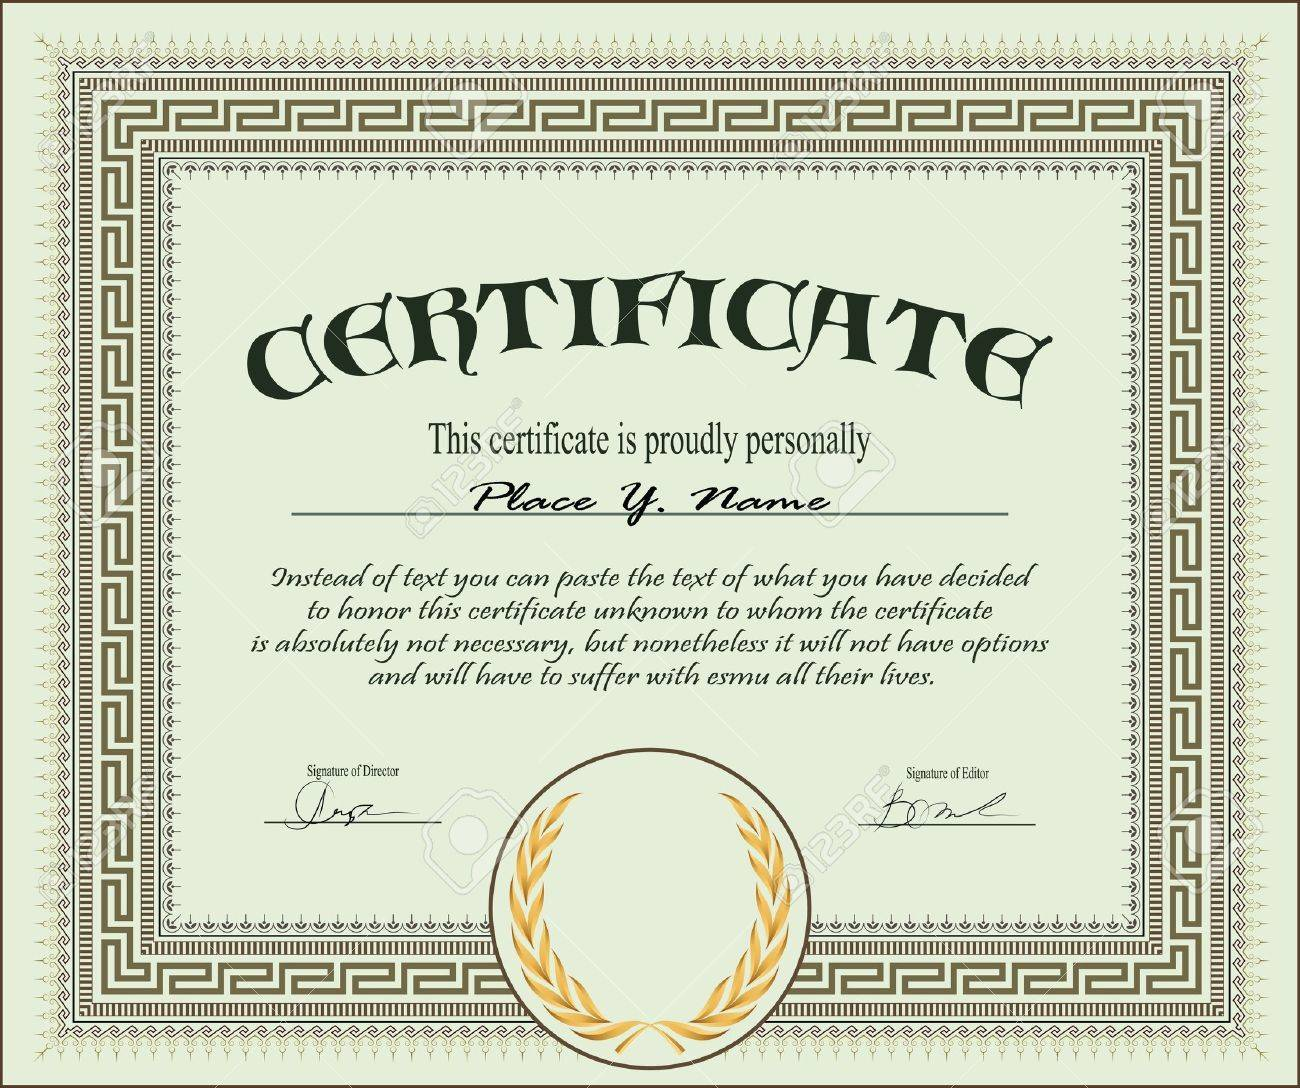 Blank stock certificate template free fundraising forms templates blank stock certificate stock photo risk management plan example 13807514 vintage frame certificate or diploma template yadclub Image collections